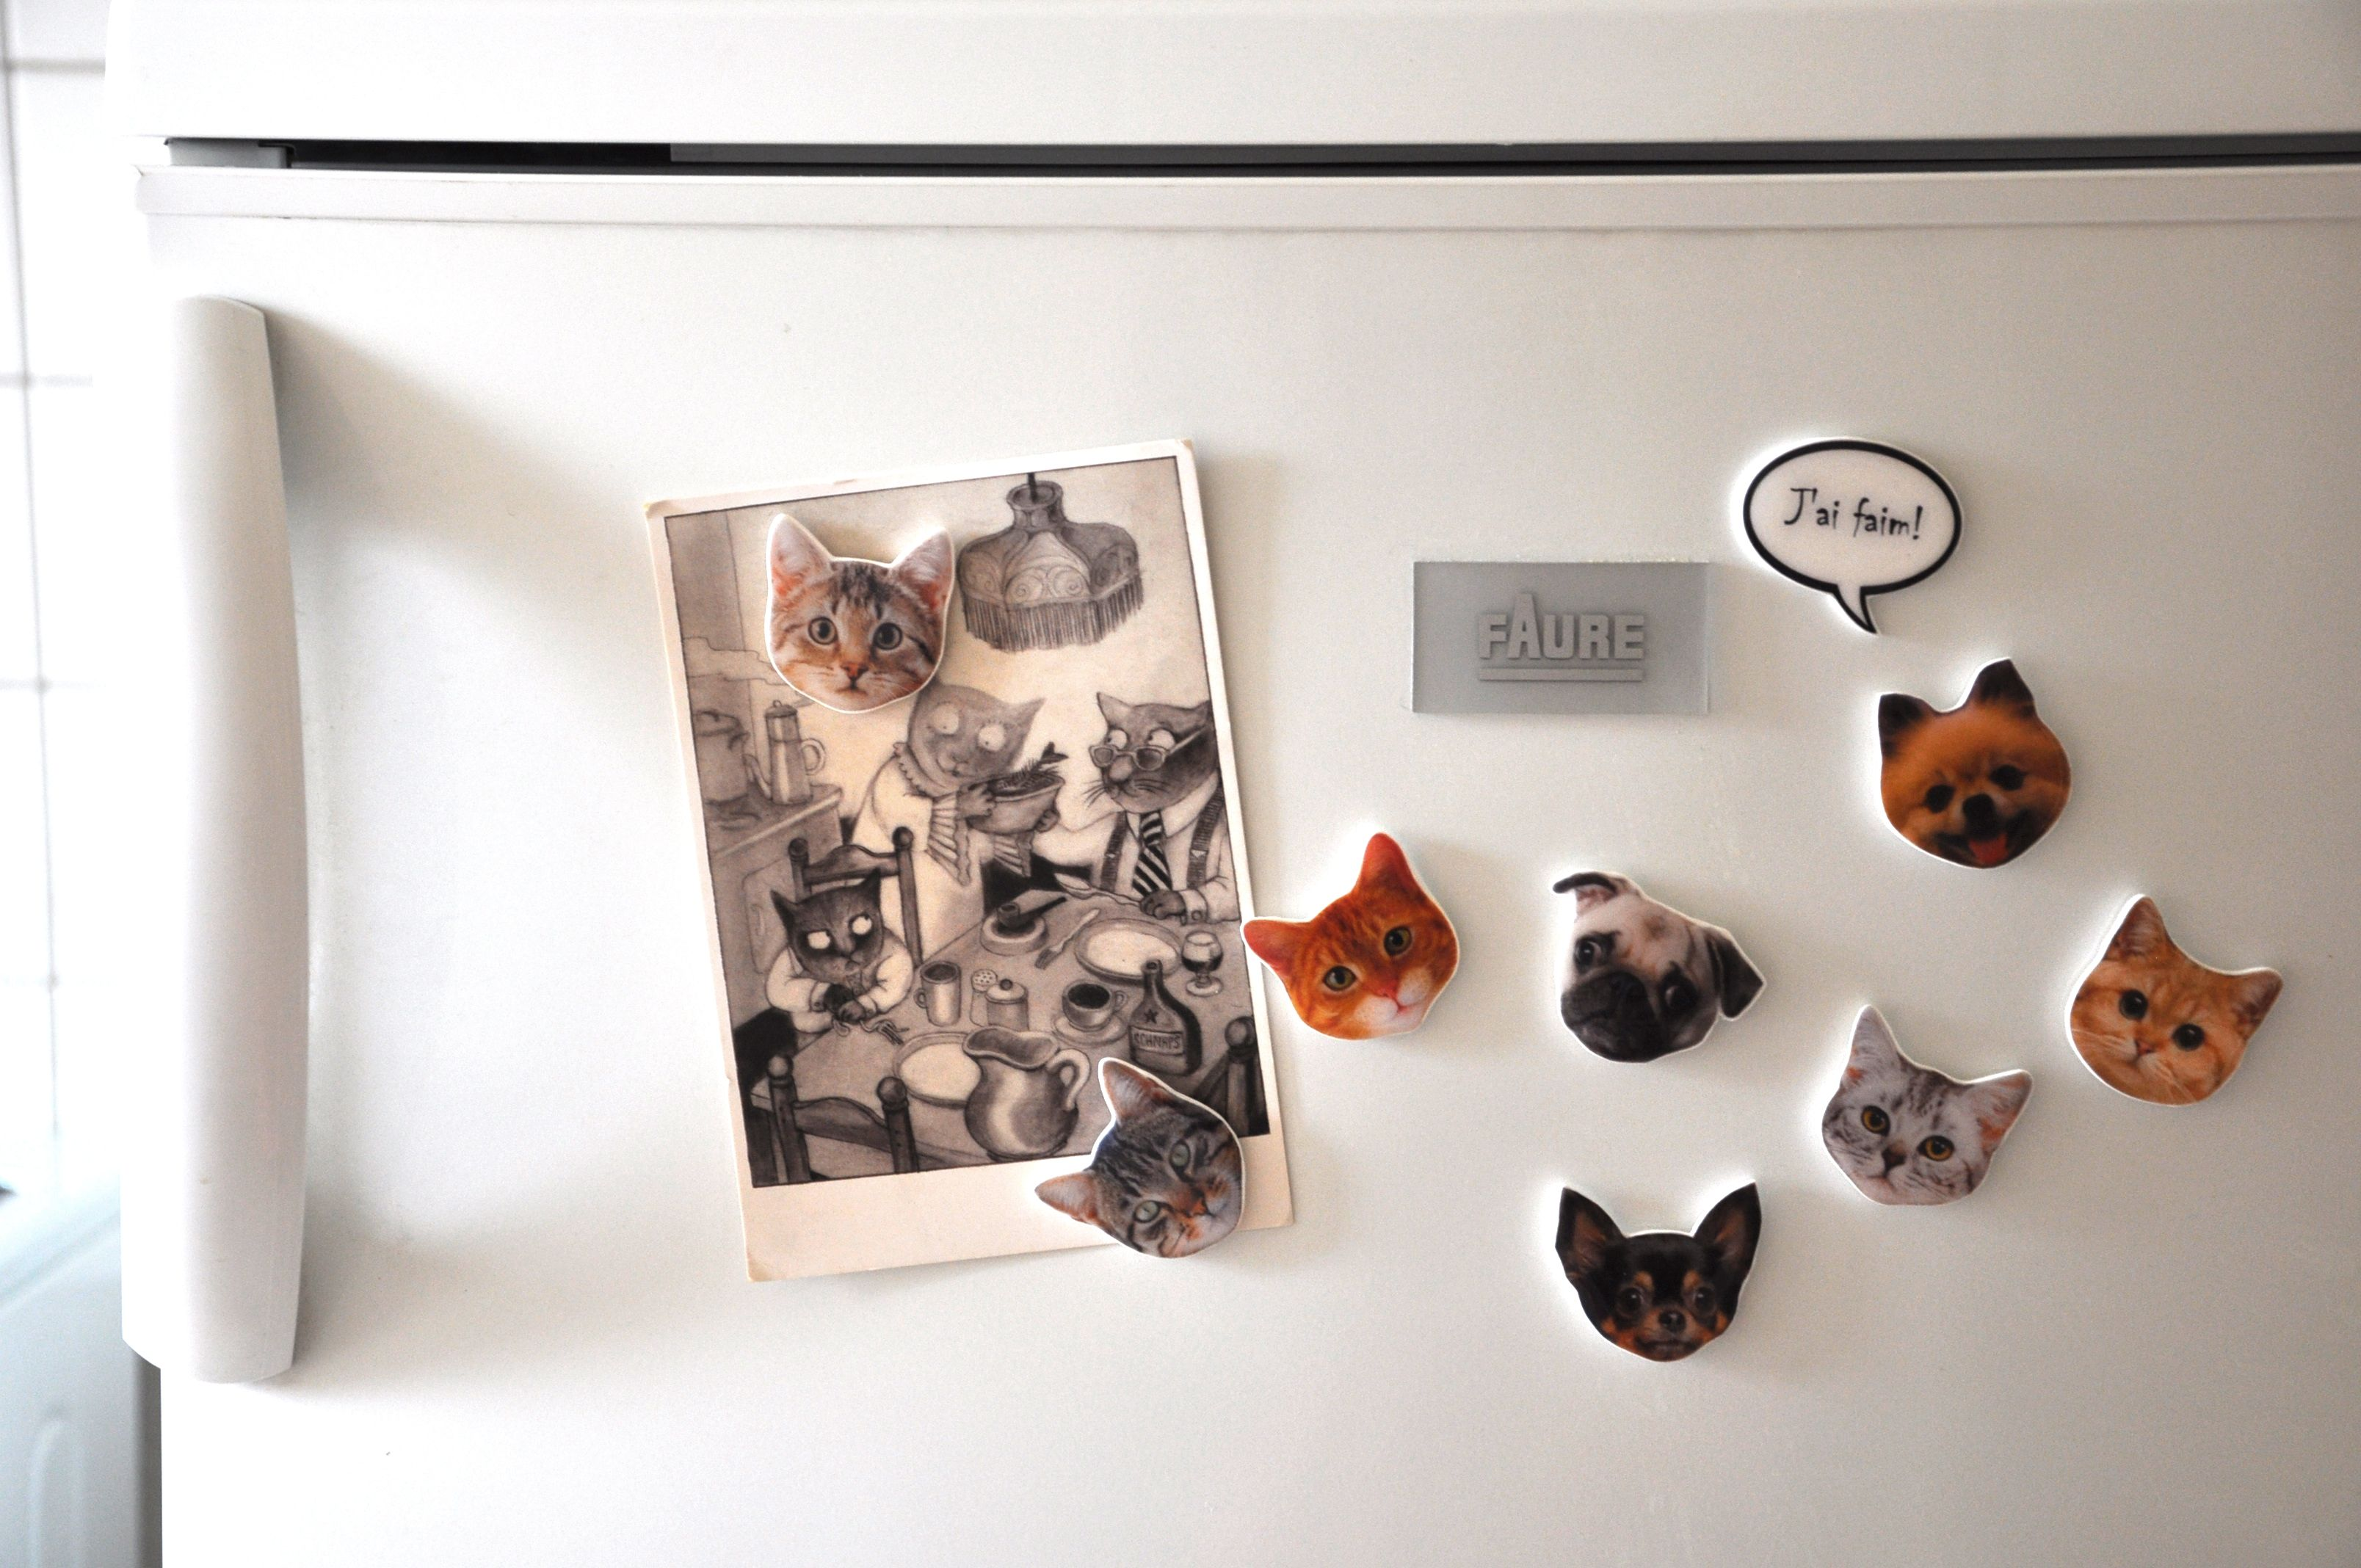 Cute Cat and Dog fridge magnets to remind you to feed your four-legged bellies…